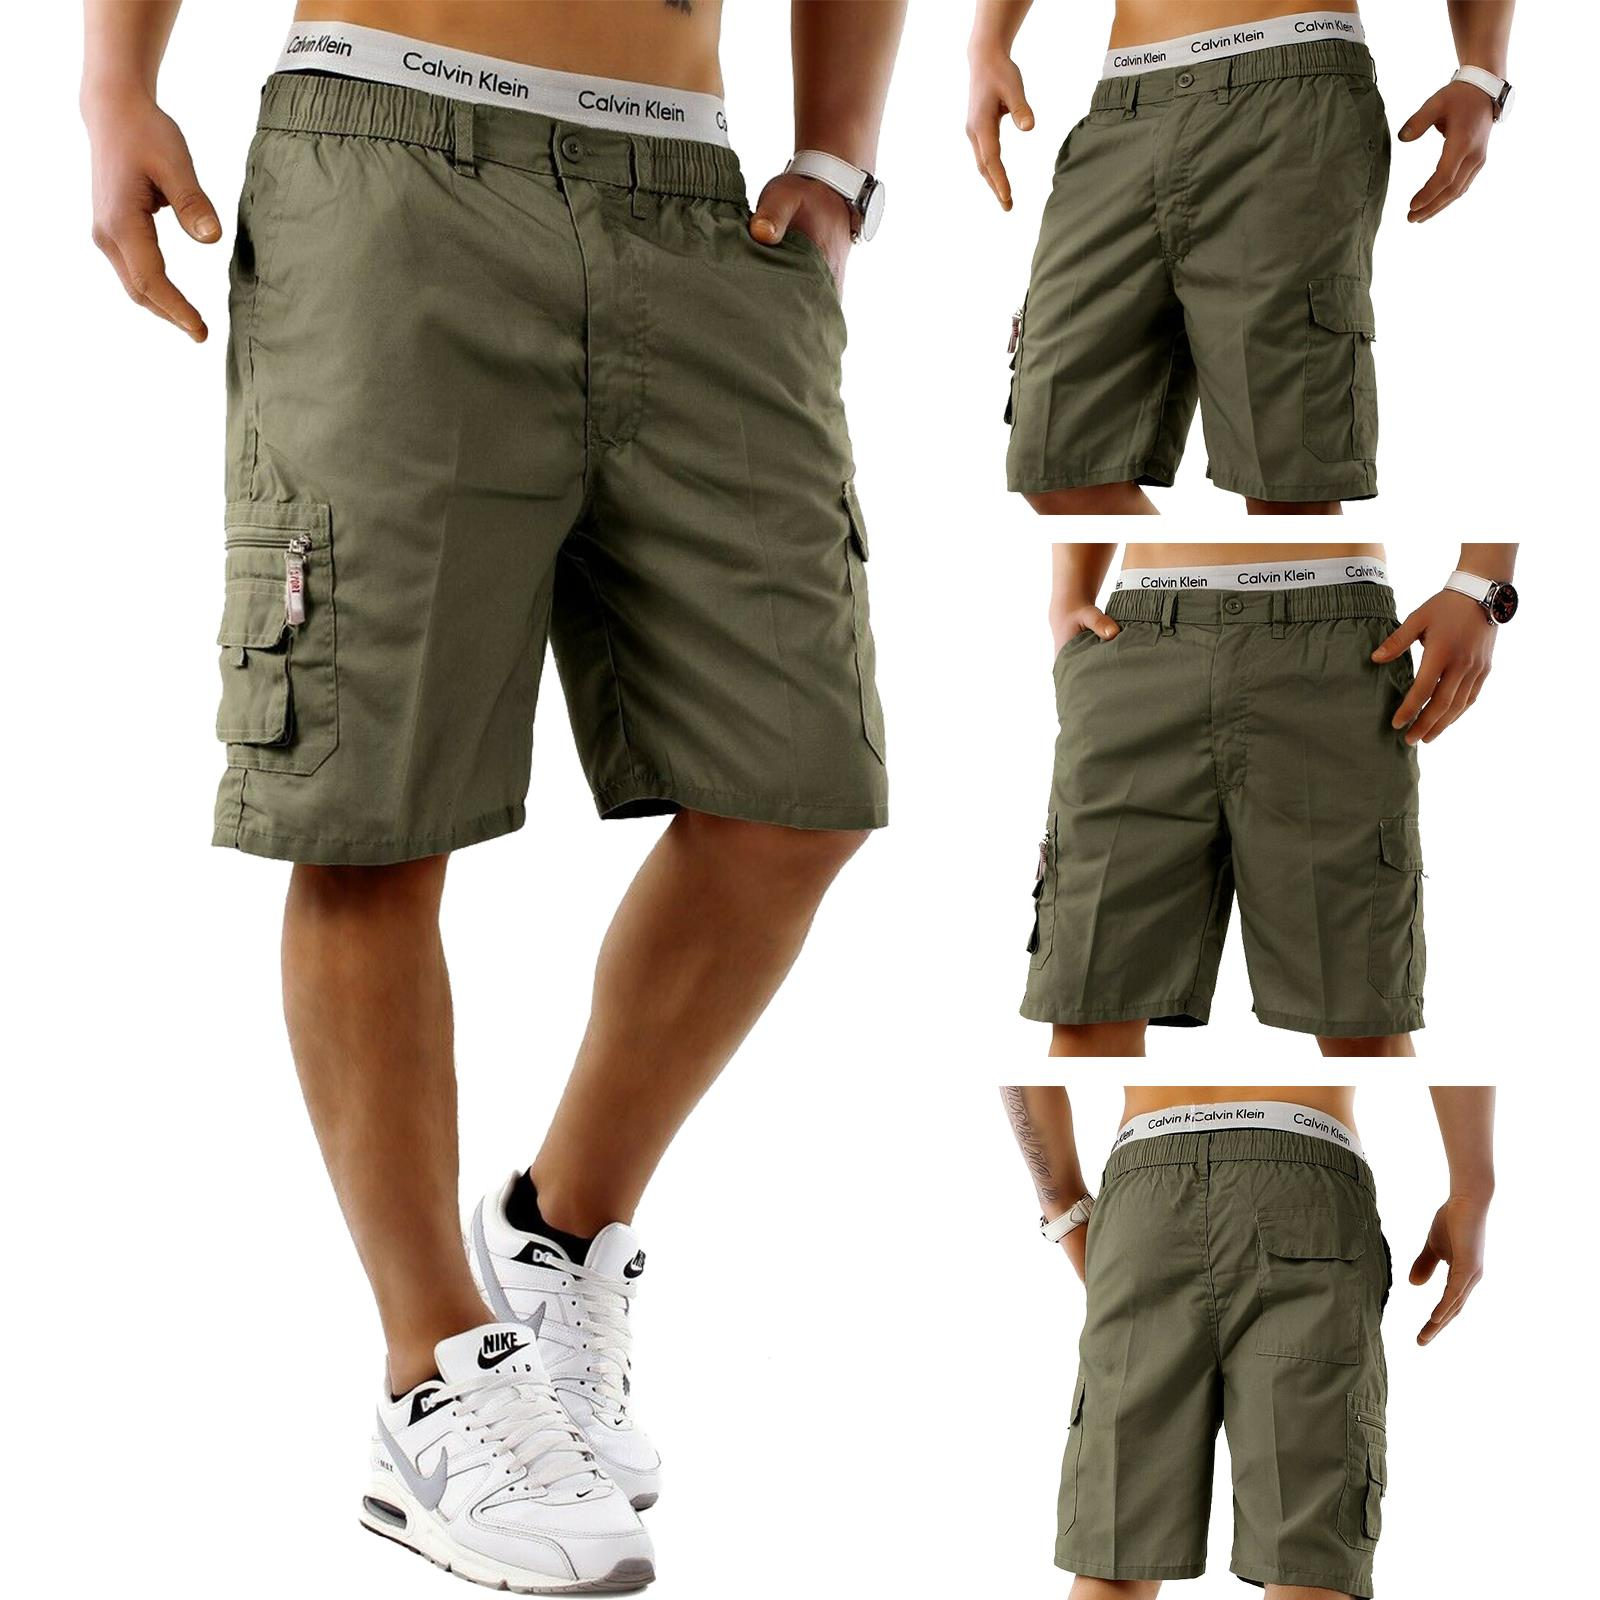 Mens-Cargo-Shorts-Elasticated-Waist-Casual-Cotton-Combat-Pants-M-L-XL-2XL-3XL thumbnail 5